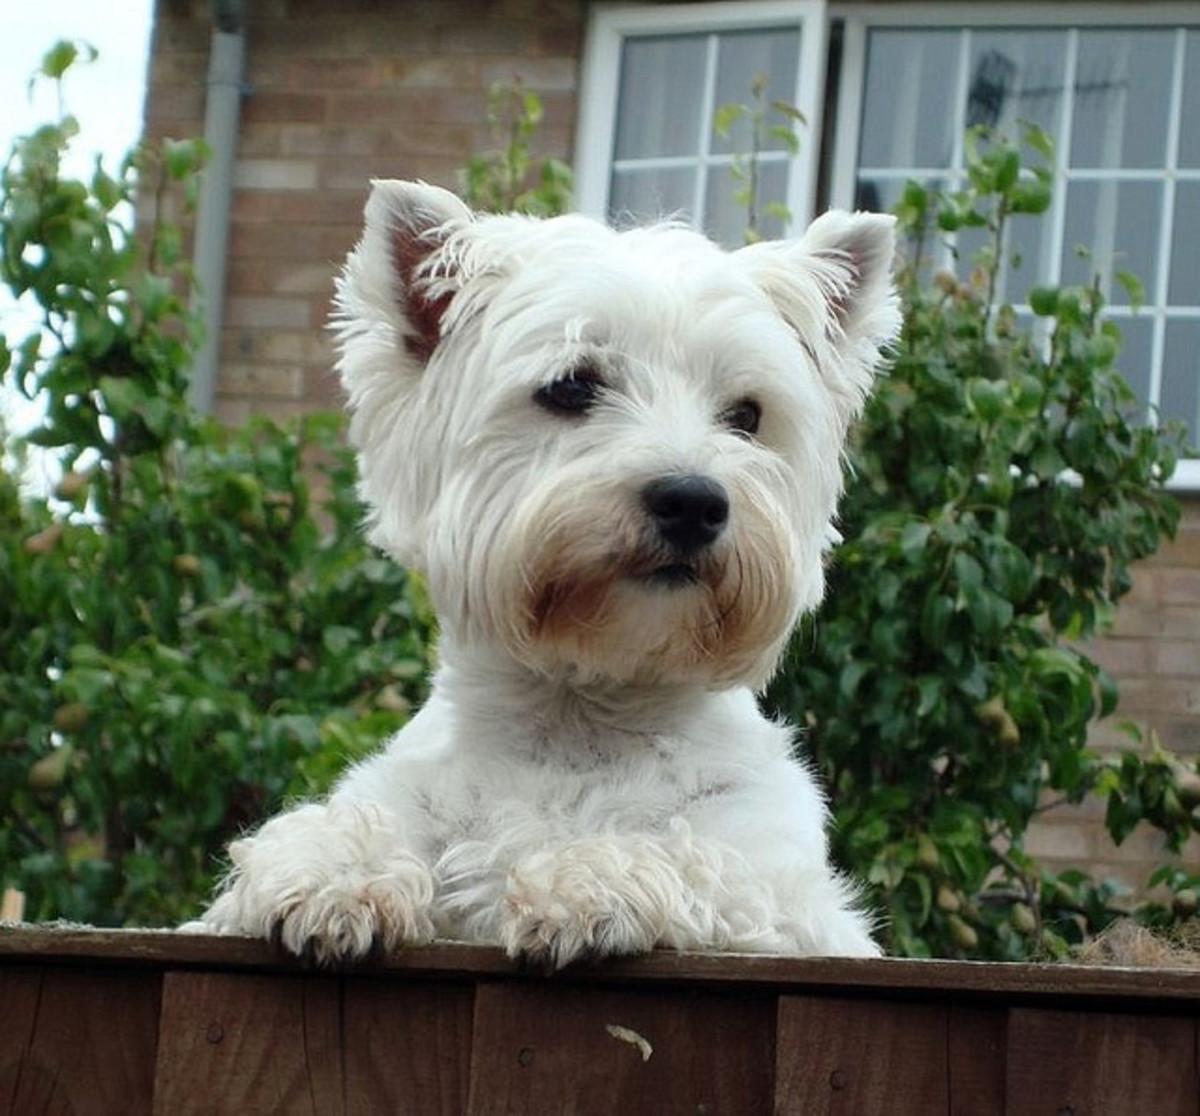 This Westie wants to know what is going on over there.